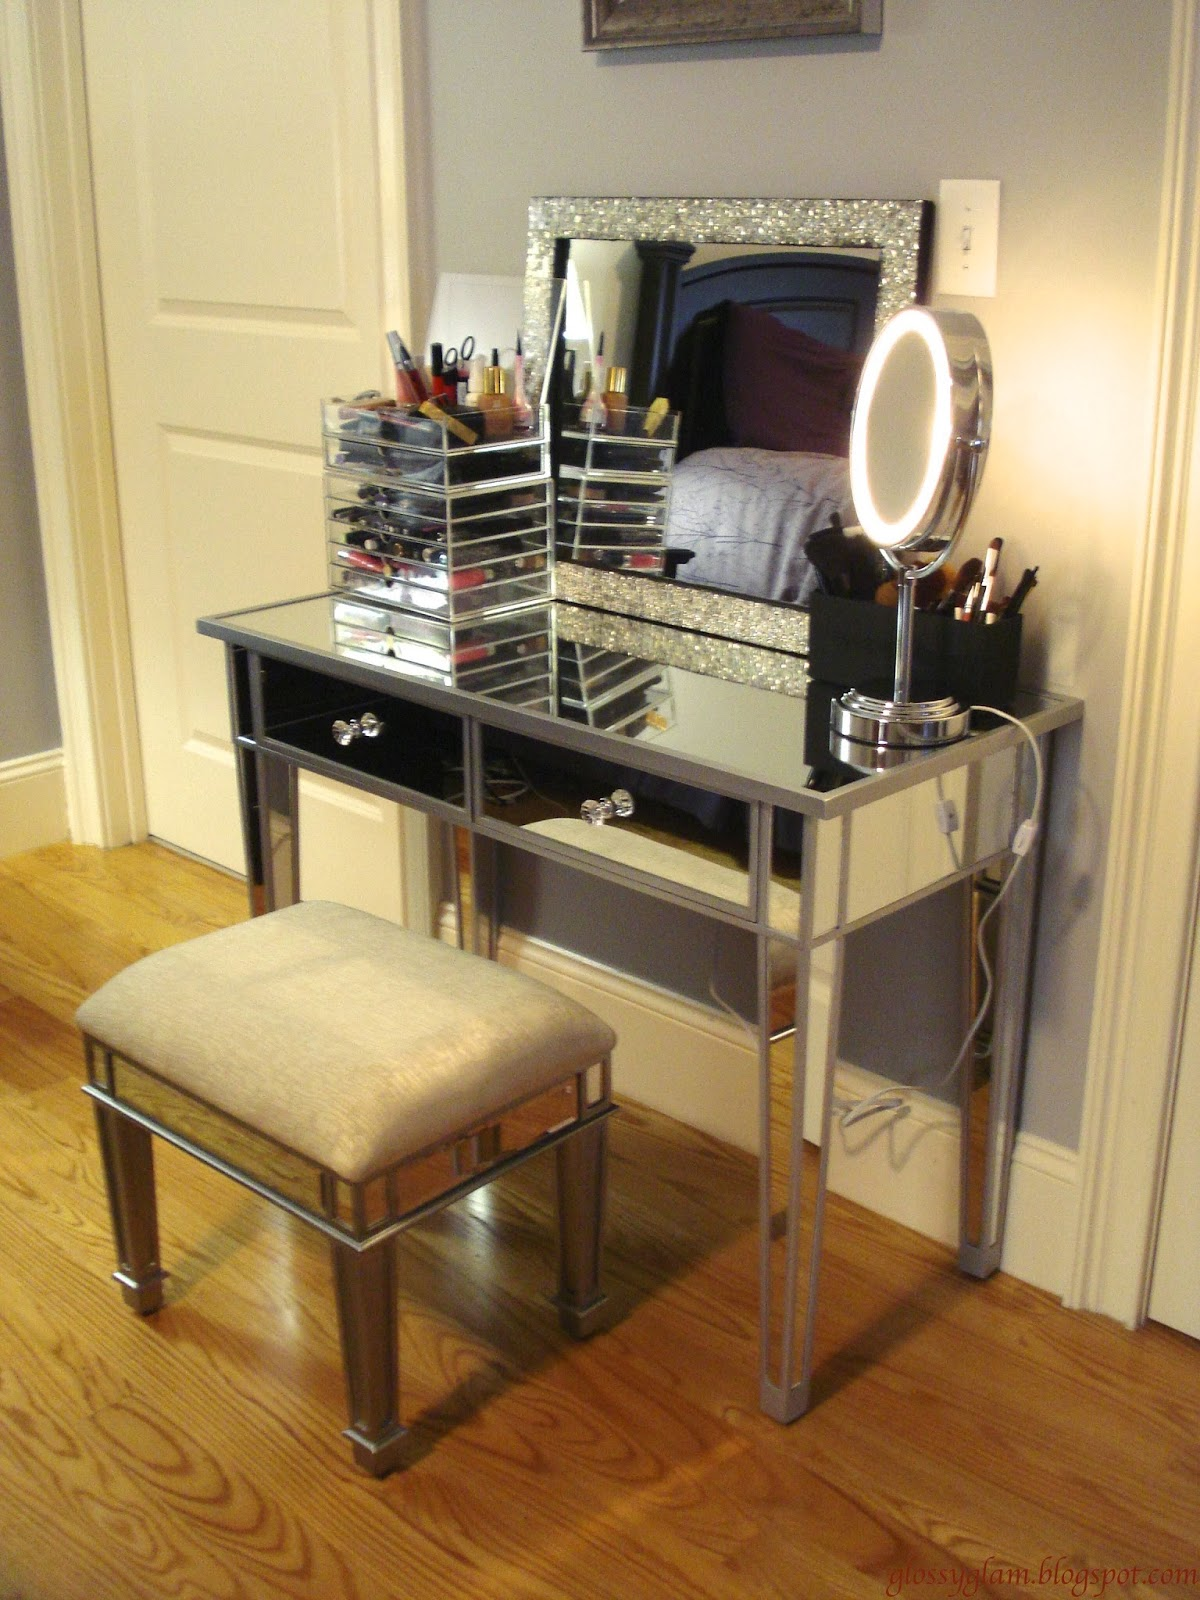 Fascinating Hayworth Vanity for Bedroom Furniture Ideas: Amusing Hayworth Vanity Mirrored Vanity And Ikea Vanity Also Ikea Rug Hayworth Rug Ideas